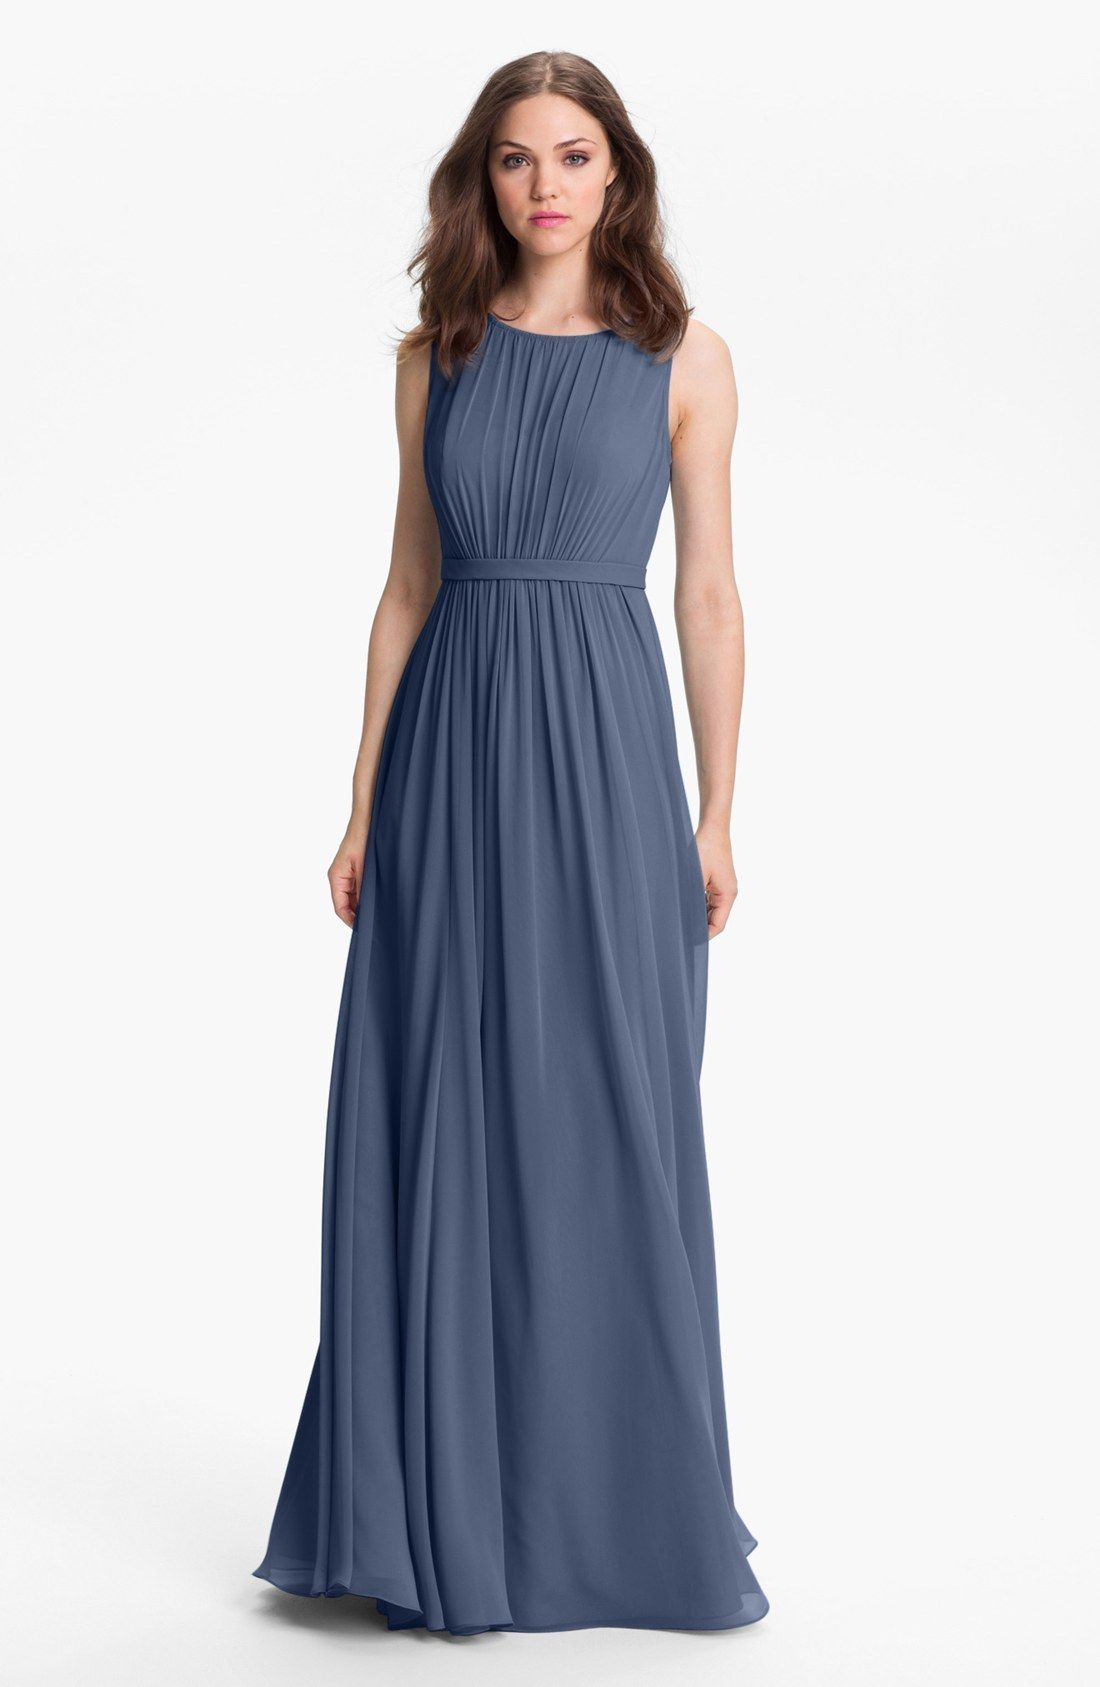 ddd14a84bf Twist knot detail puts a modern spin on this flowy gown